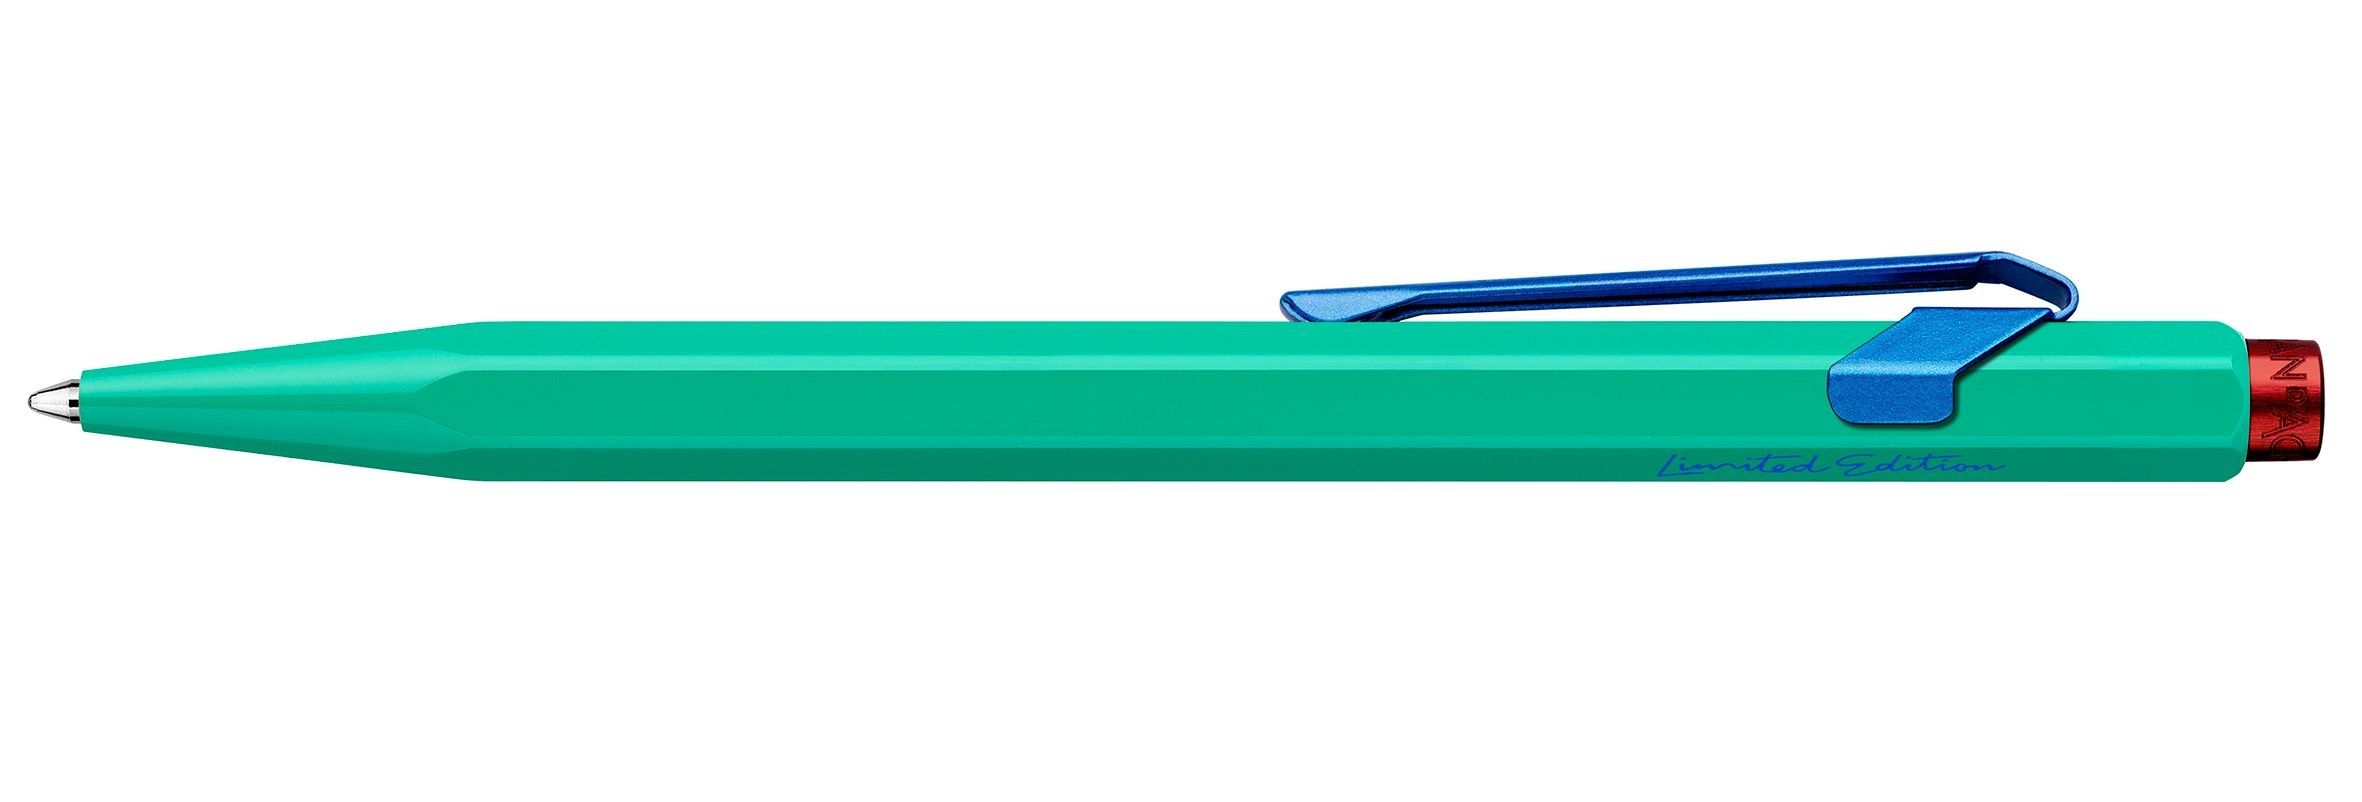 Caran d'Ache 849 Claim Your Style II Limited Edition Veronese Green Ballpoint